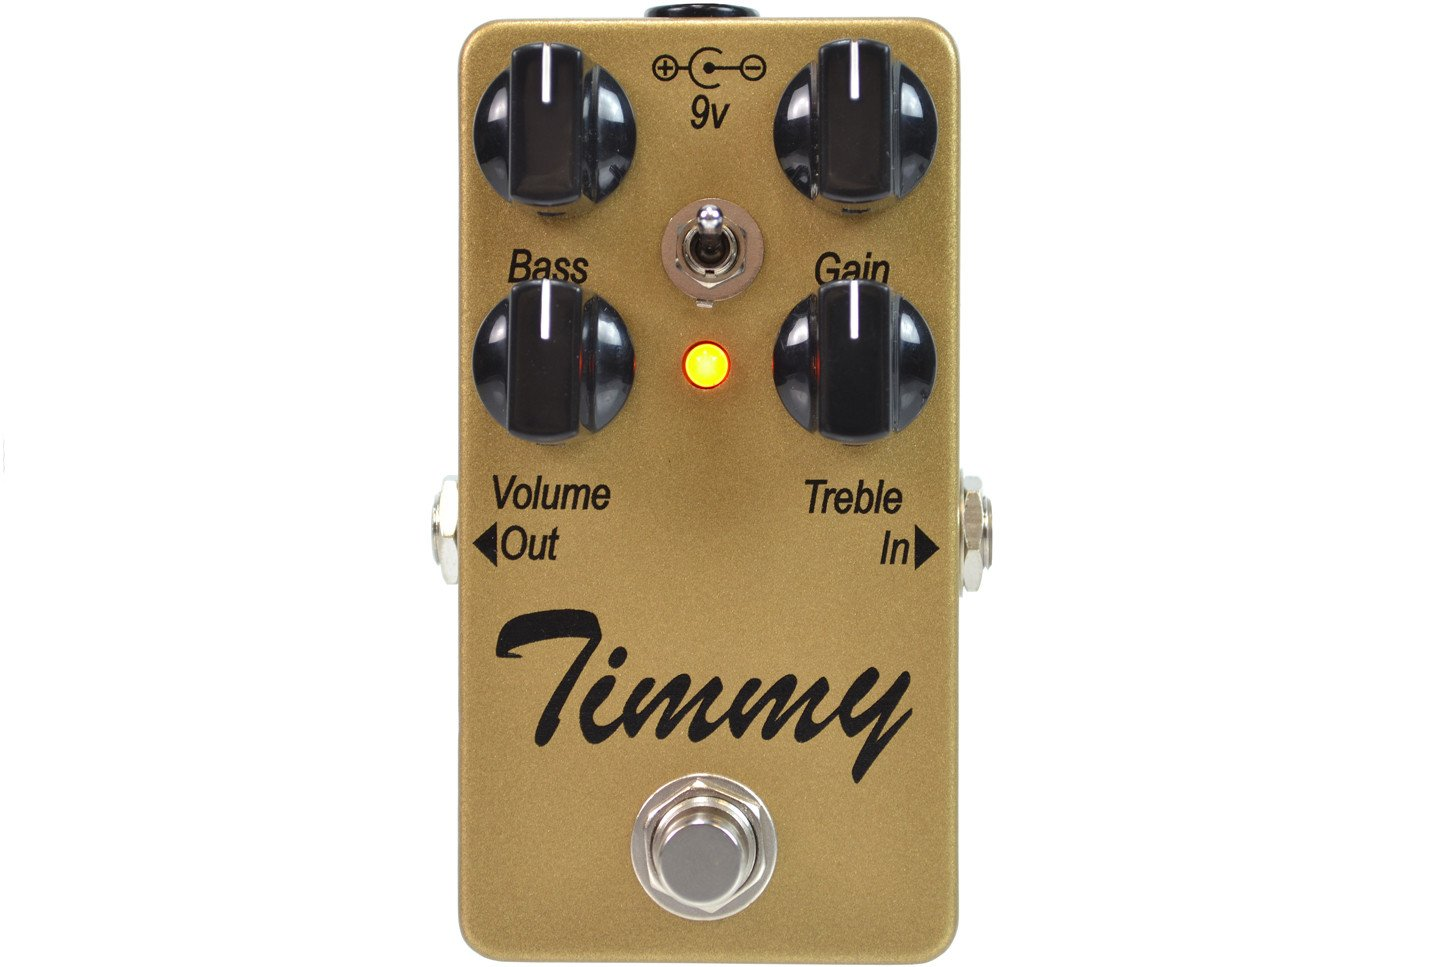 Teemah!, the Helix model of a Paul Cochrane Timmy® Overdrive